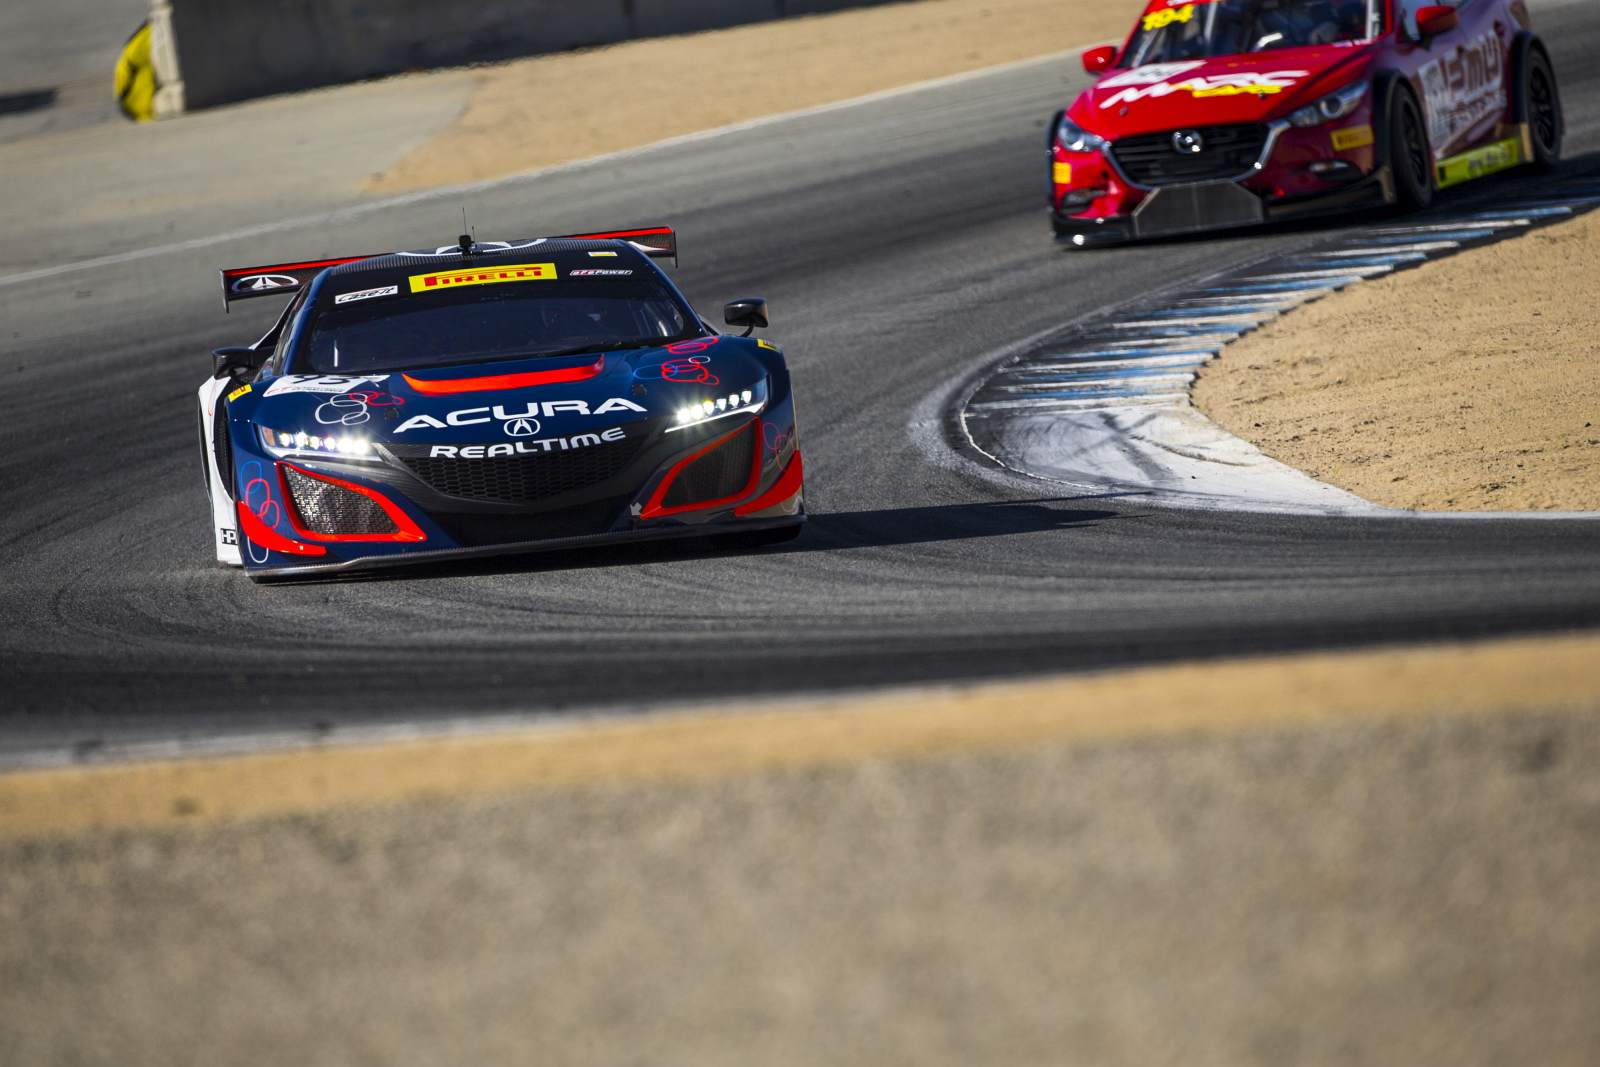 peter-kox-realtime-racing-pirelli-world-challenge-california-001